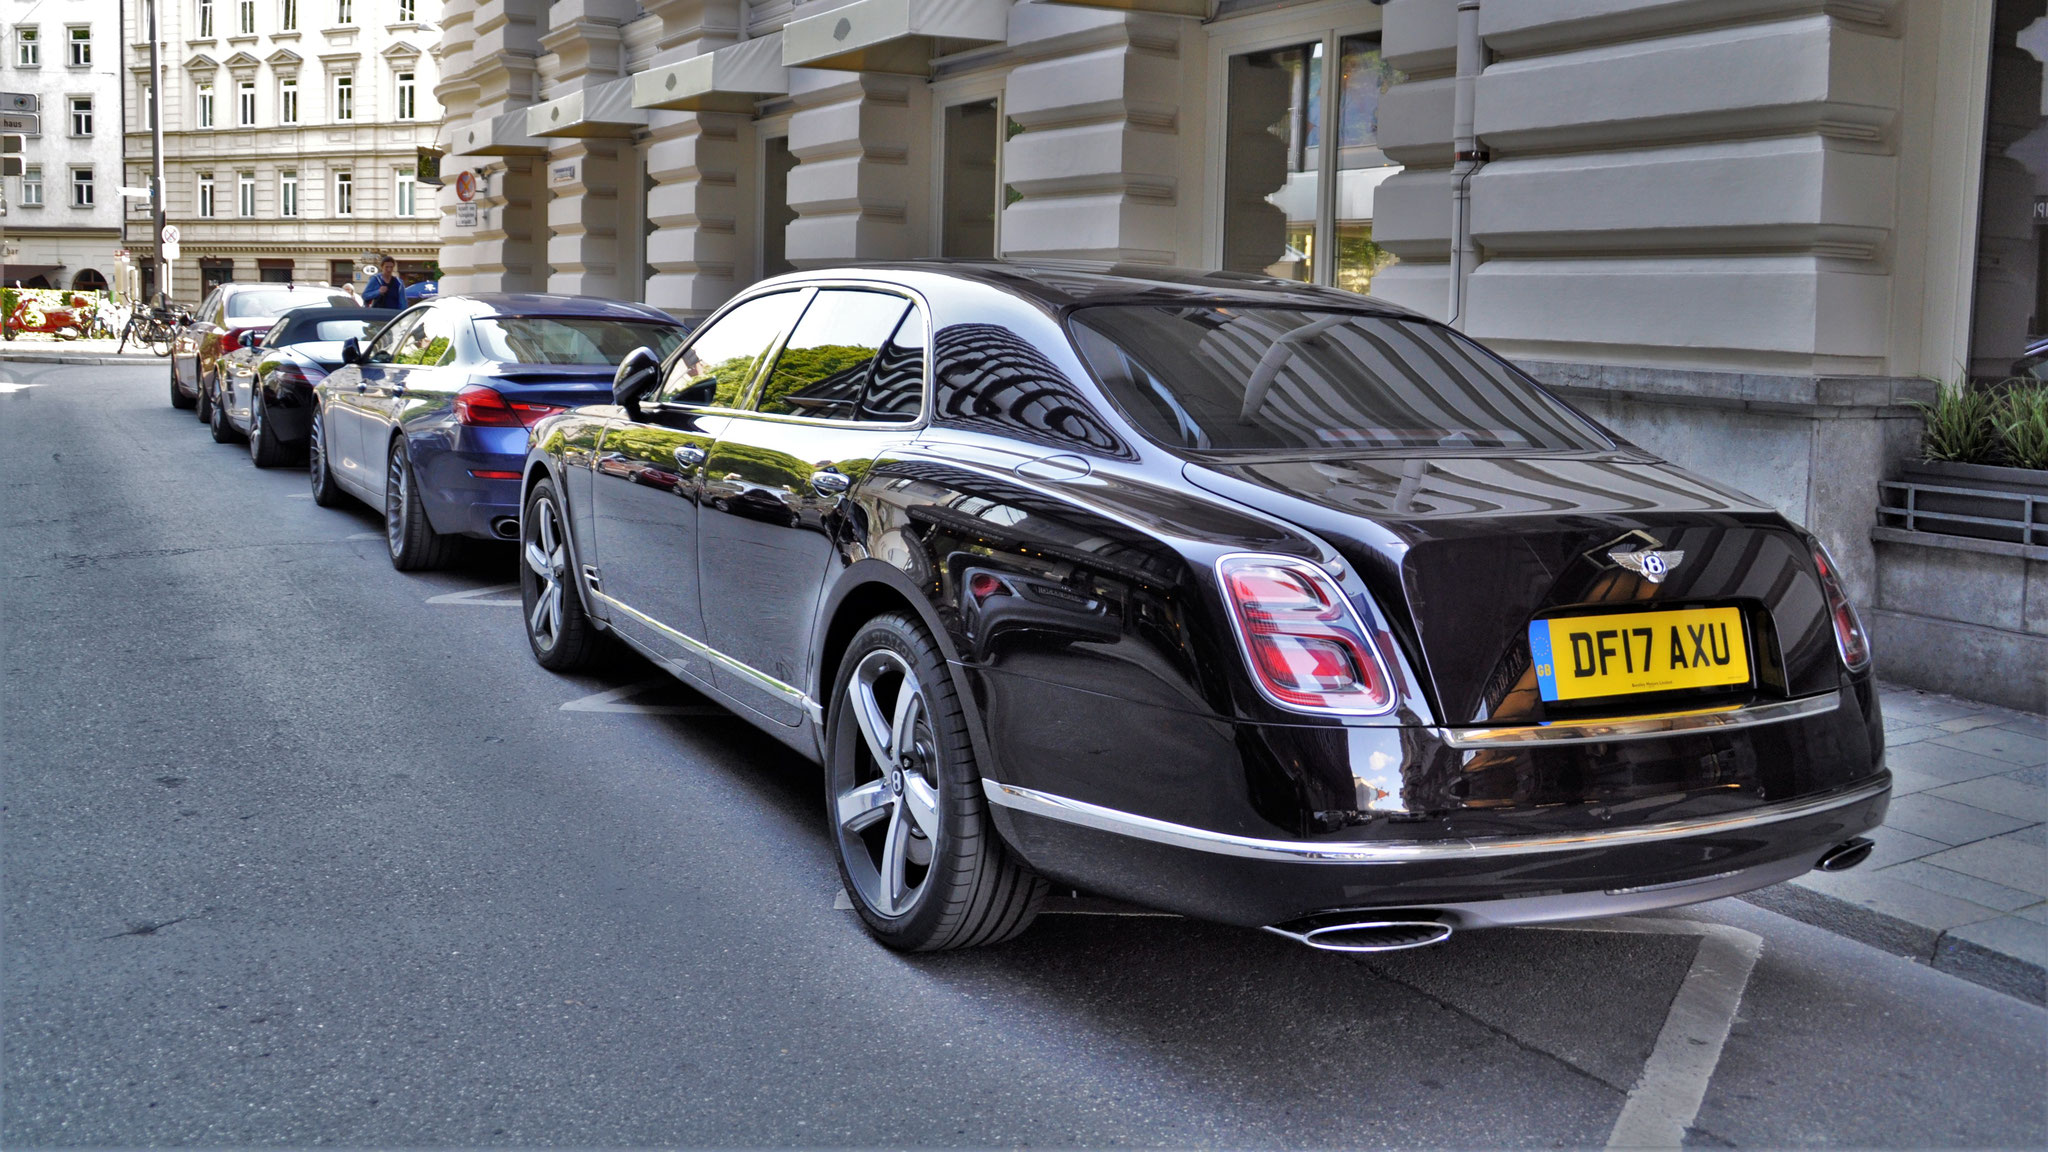 Bentley Mulsanne - DF17-AXU (GB)